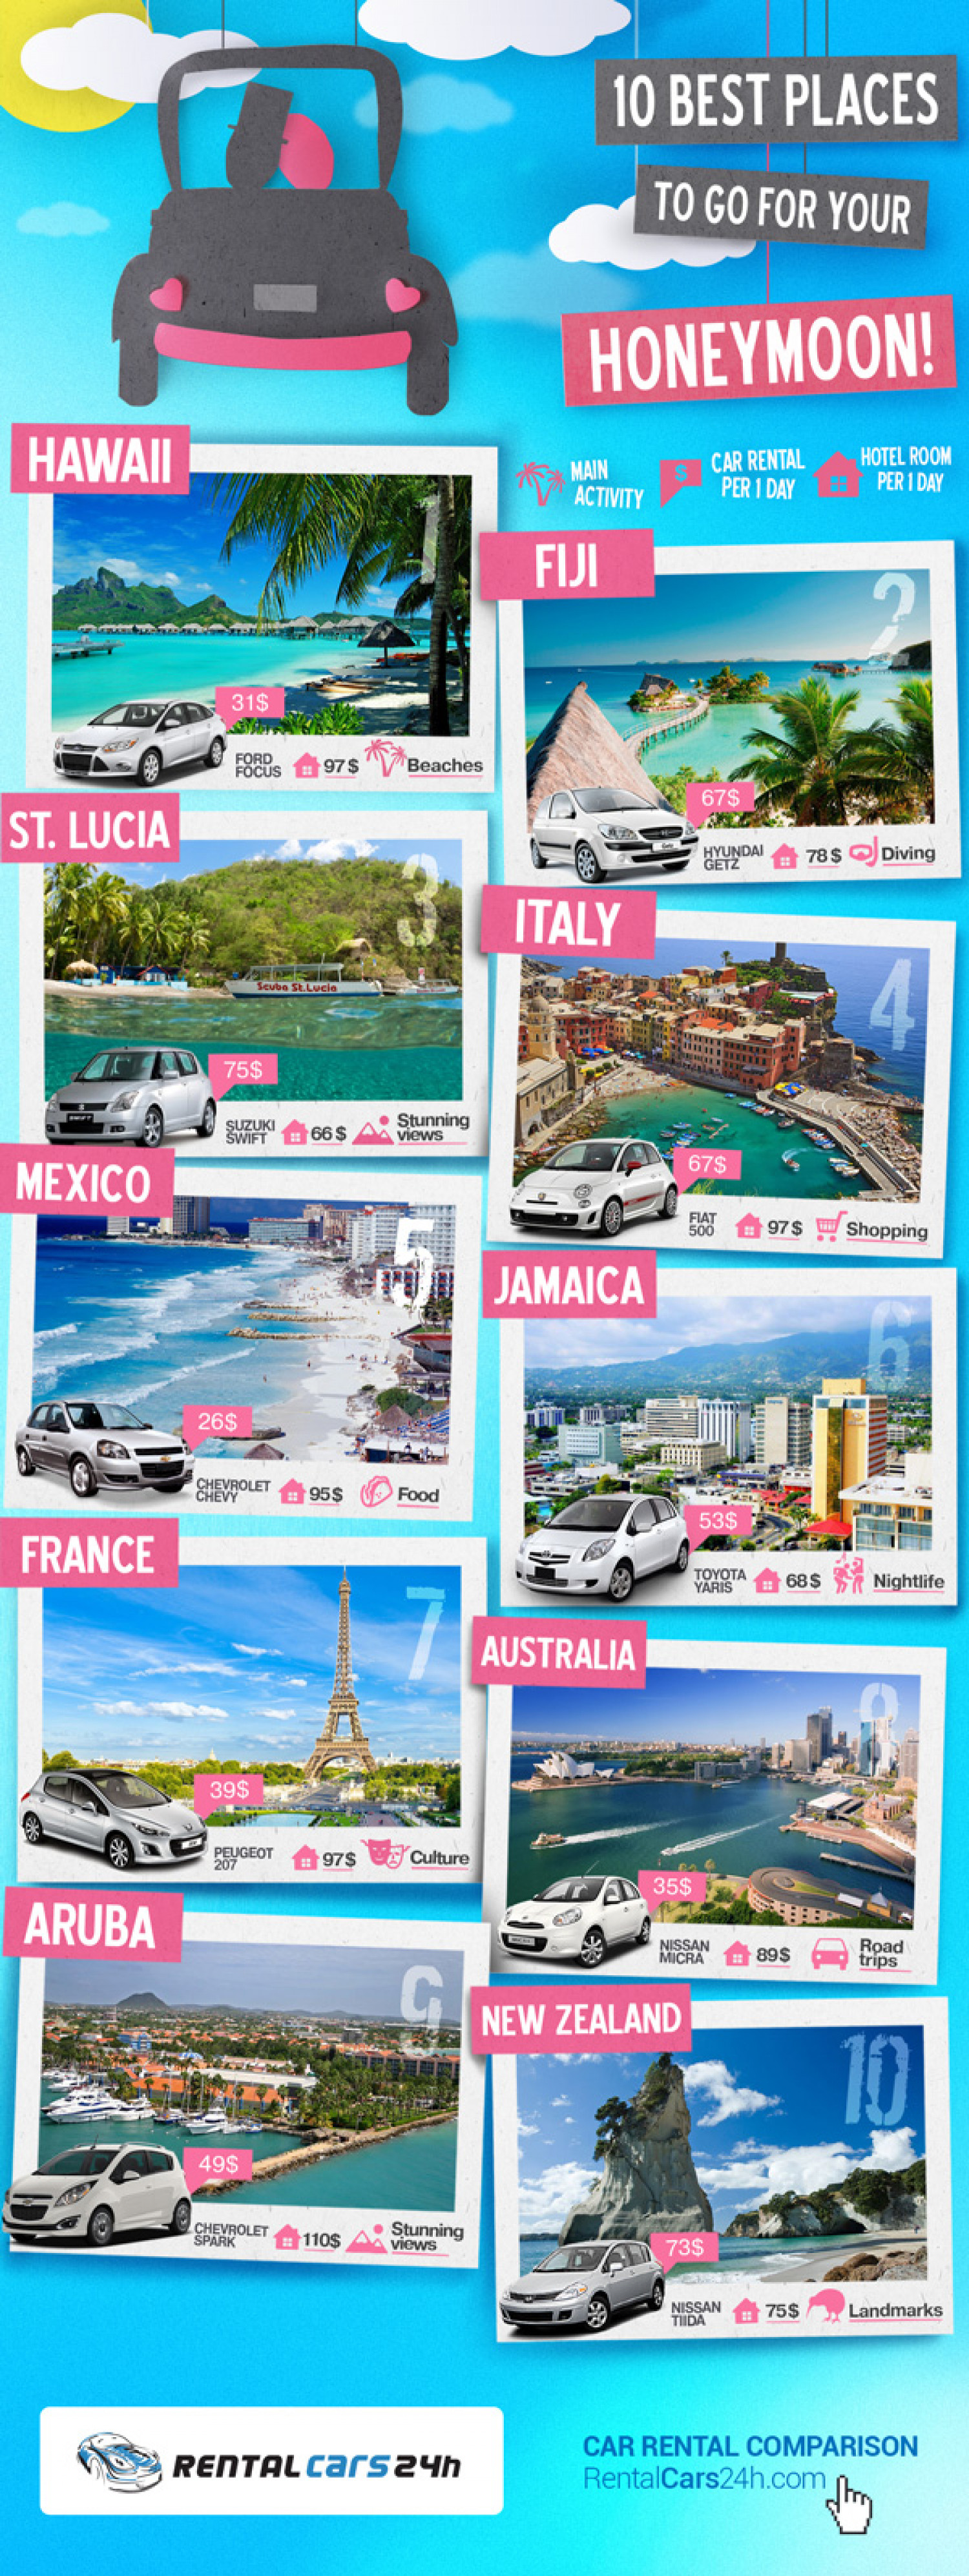 10 Best Places To Go For Your Honeymoon! Infographic